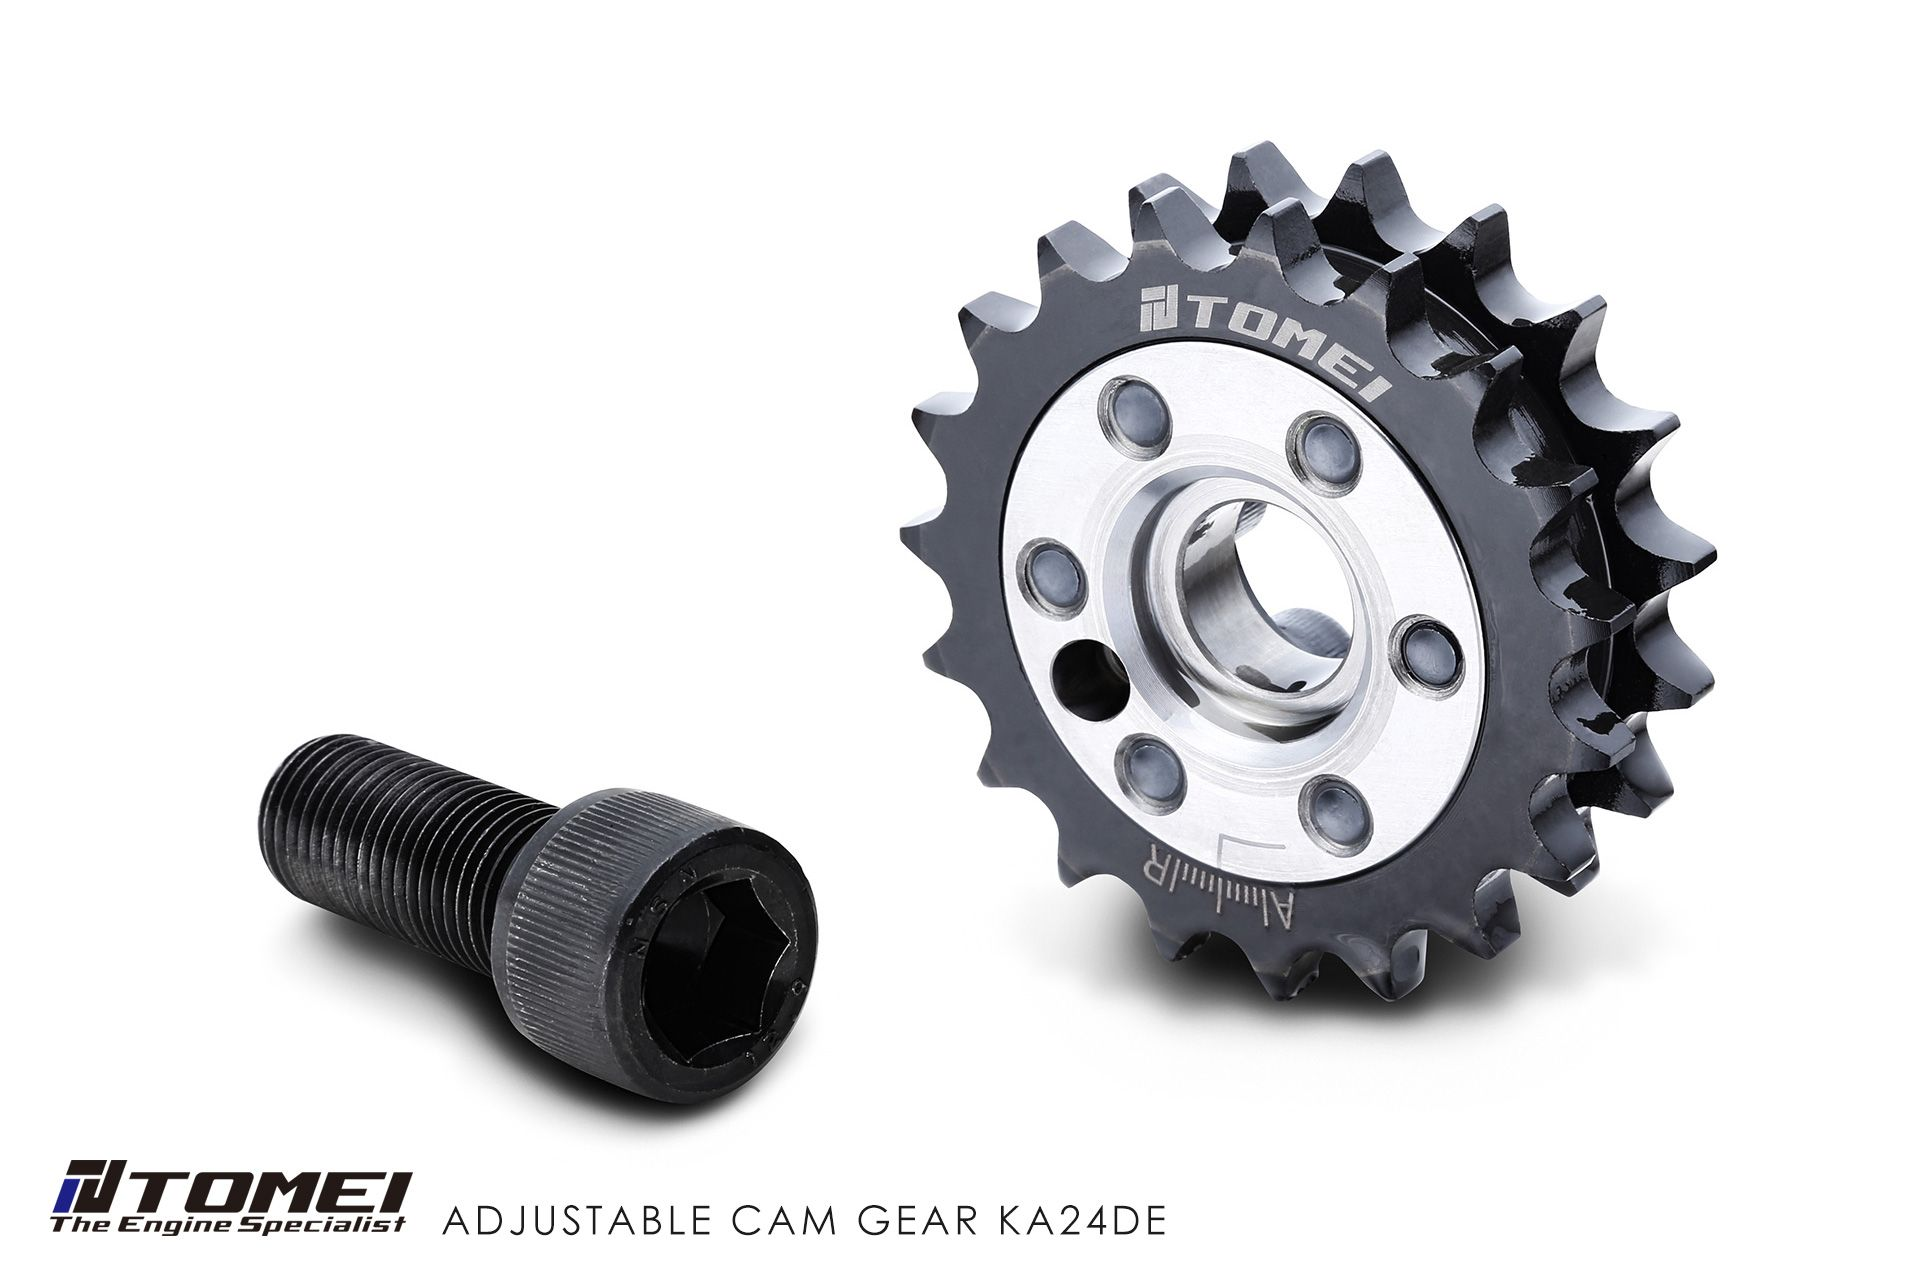 Tomei Adjustable Cam Gear, 1 Piece - Nissan 240SX S13 S14 KA24DE